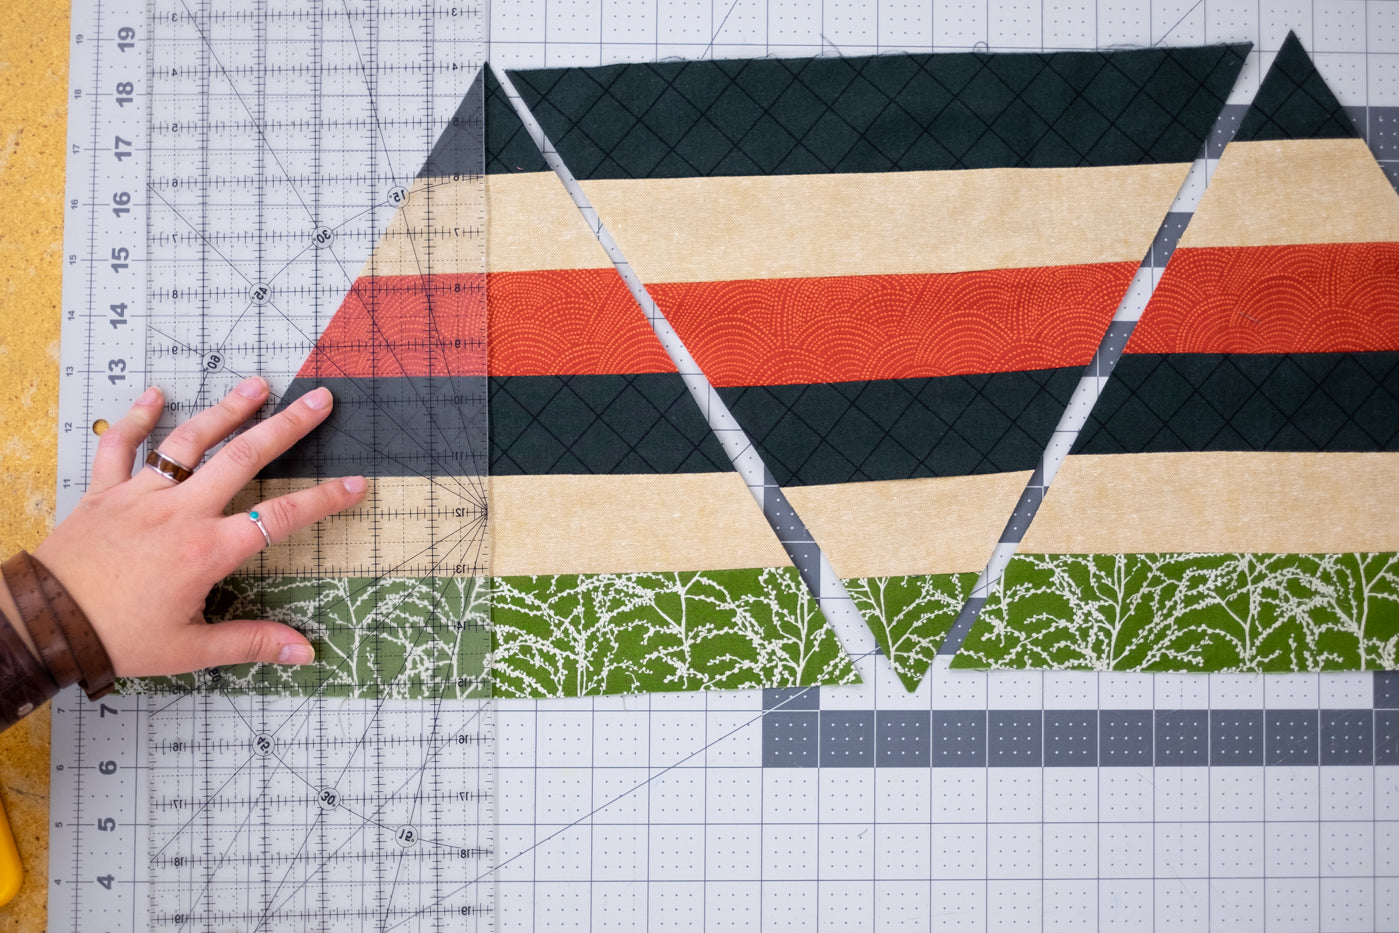 Material triangles laid out with a clear ruler over top showing them being lined up.  Triangles colors cut in lines of green with metallic sliver, soft yellow, black and red, sewn together to make a triangle.